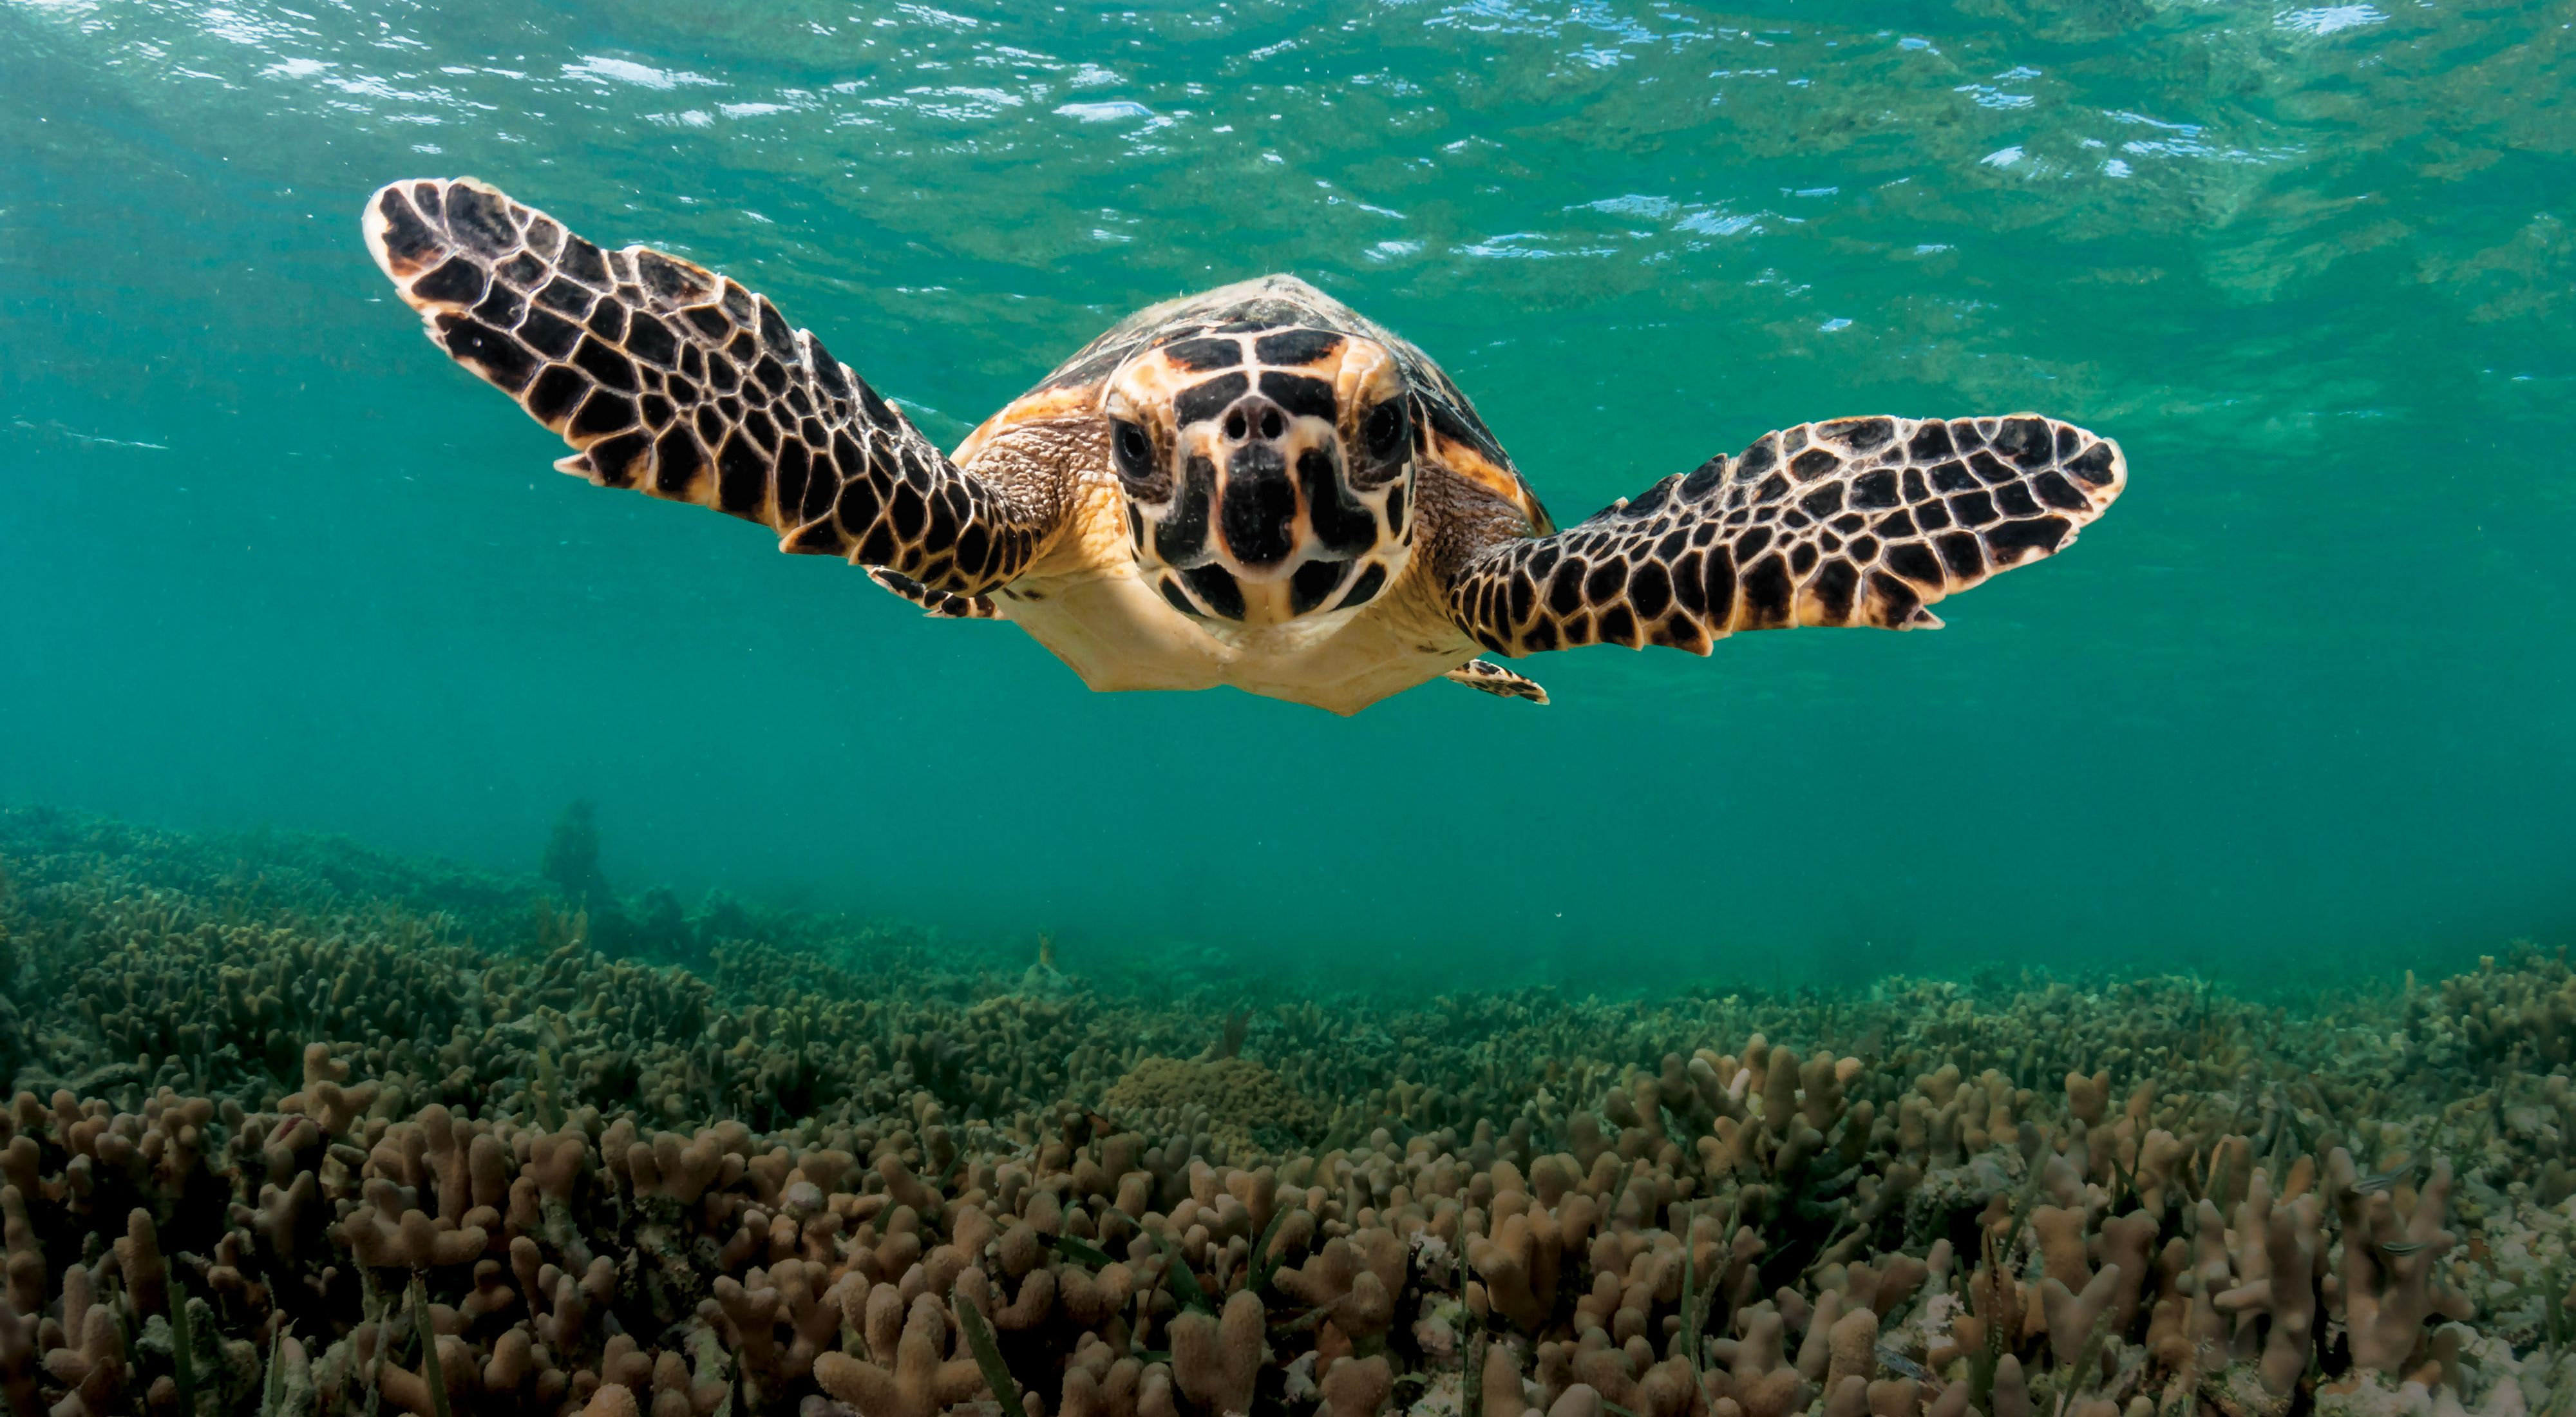 A hawksbill turtle underwater looks at the camera.